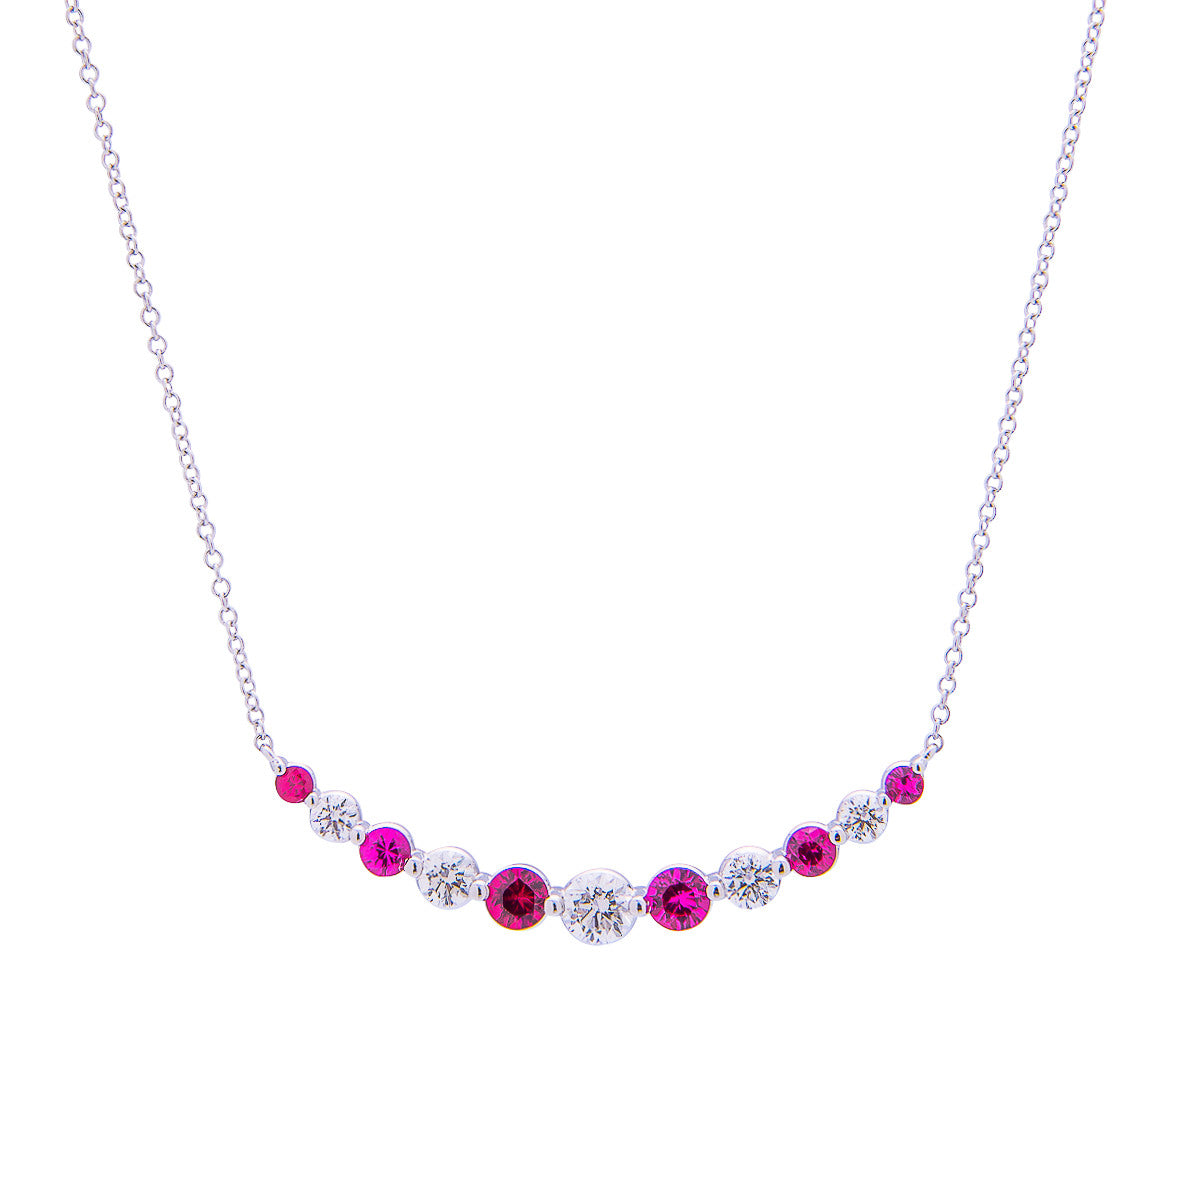 Sabel Collection 18K White Gold Round Diamonds and Round Ruby Curved Bar Necklace